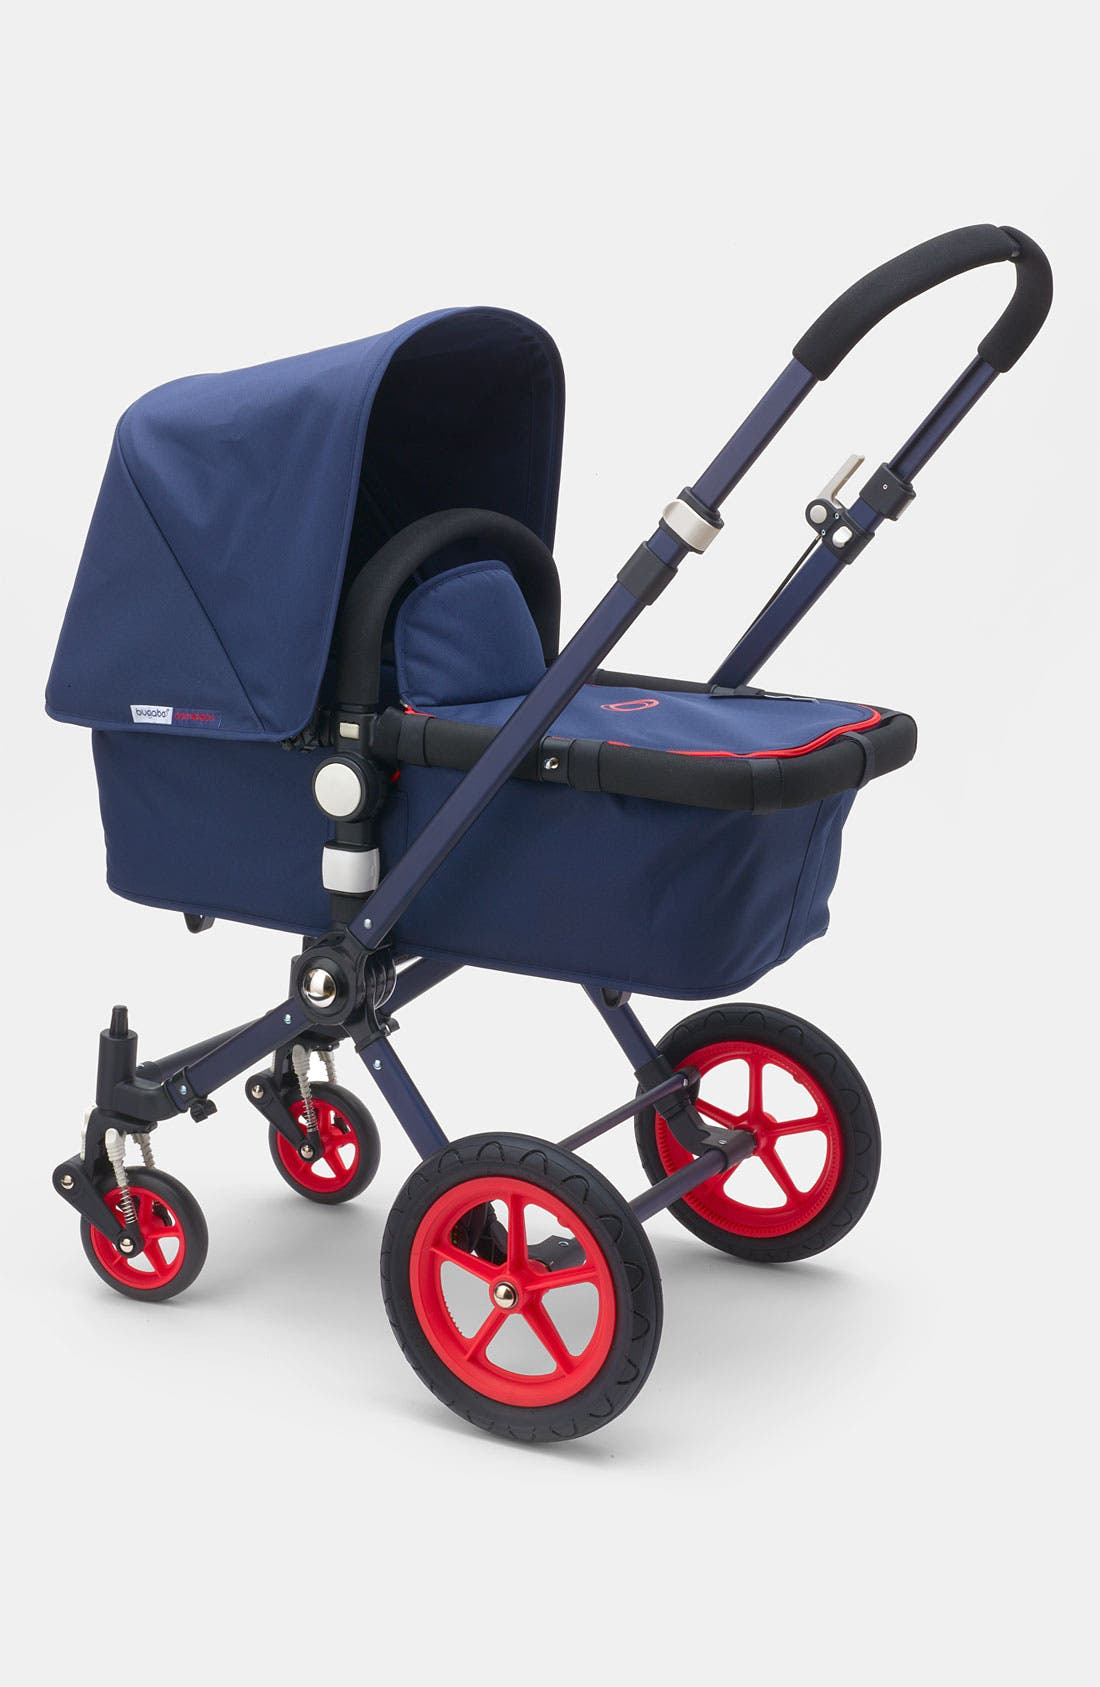 Alternate Image 1 Selected - Bugaboo 'Cameleon' Neon Stroller (Nordstrom Exclusive)